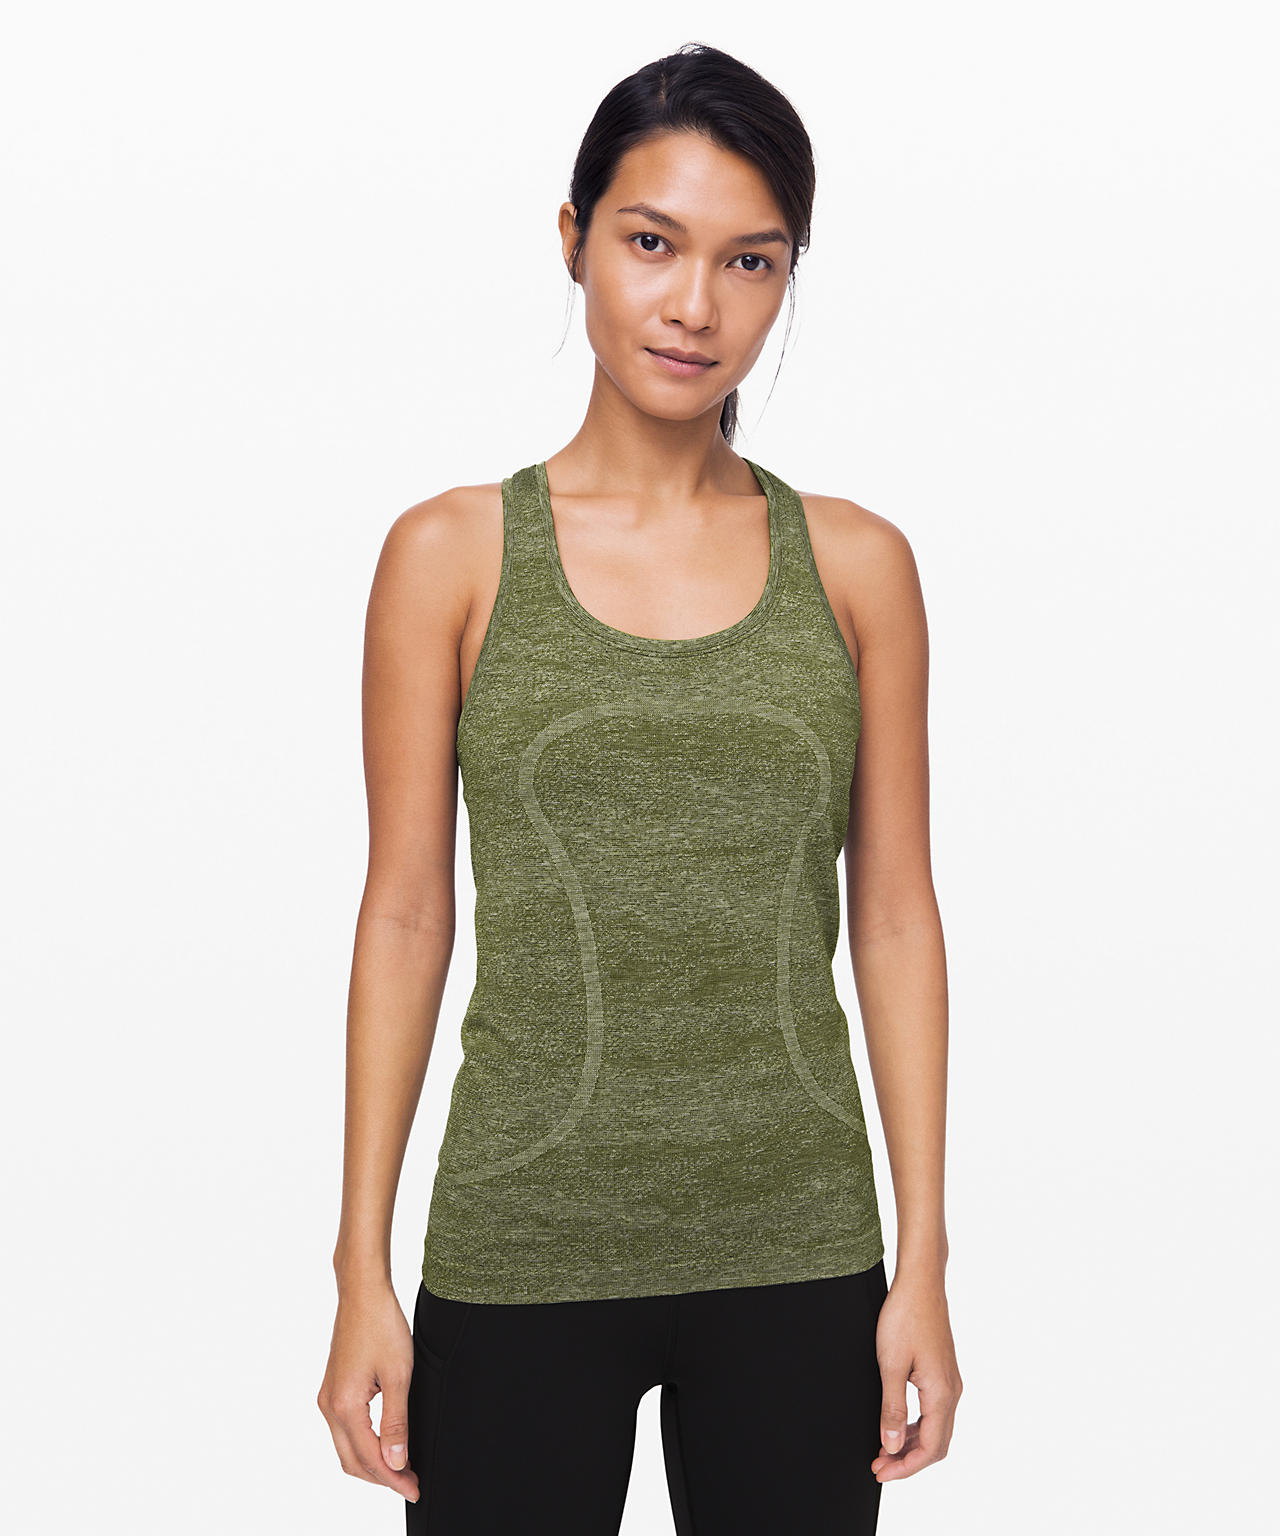 Swiftly Speed Racerback, Lululemon Upload